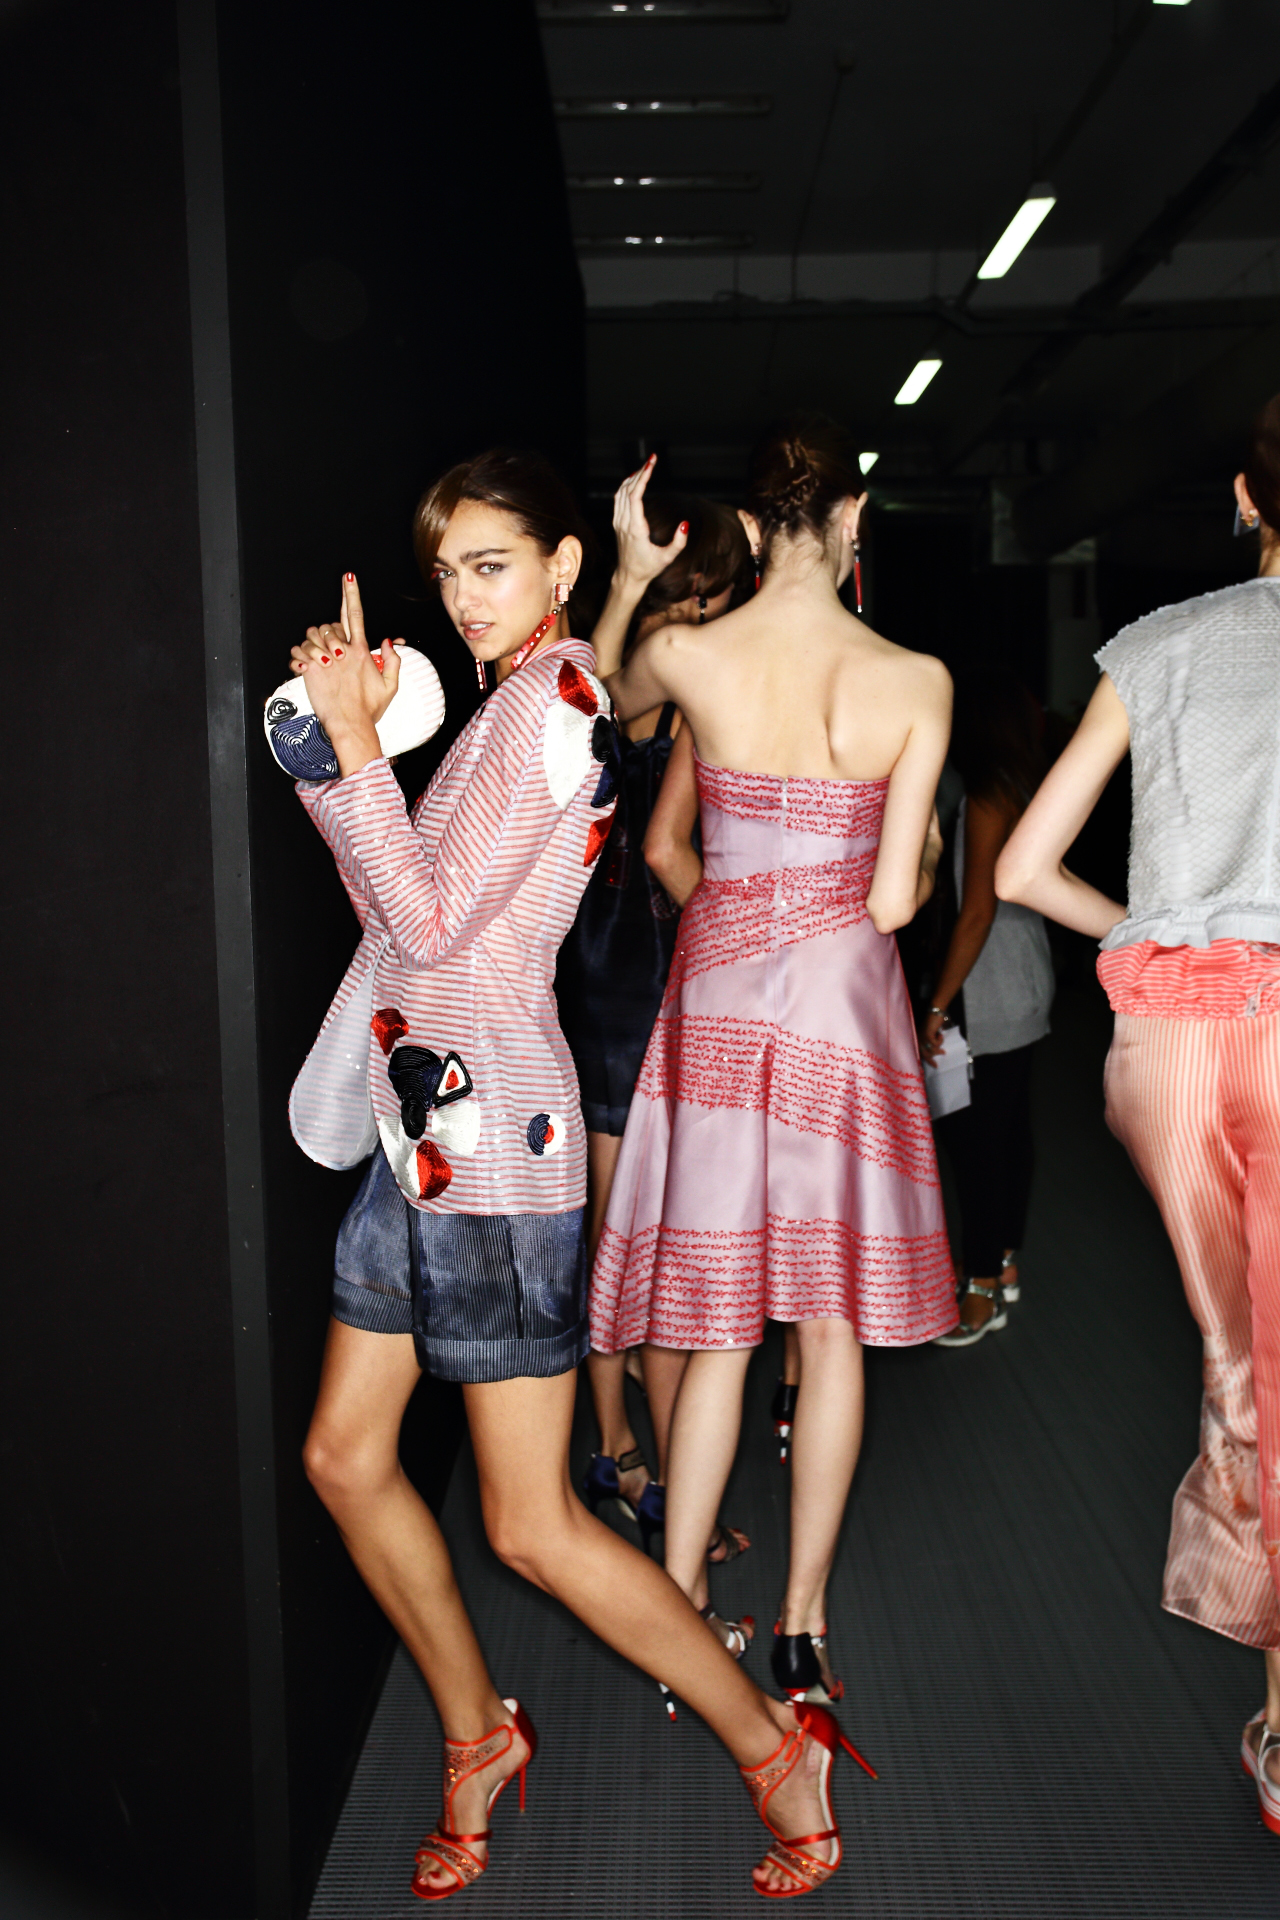 Giorgio Armani SS16 Fashion Show Milan Backstage